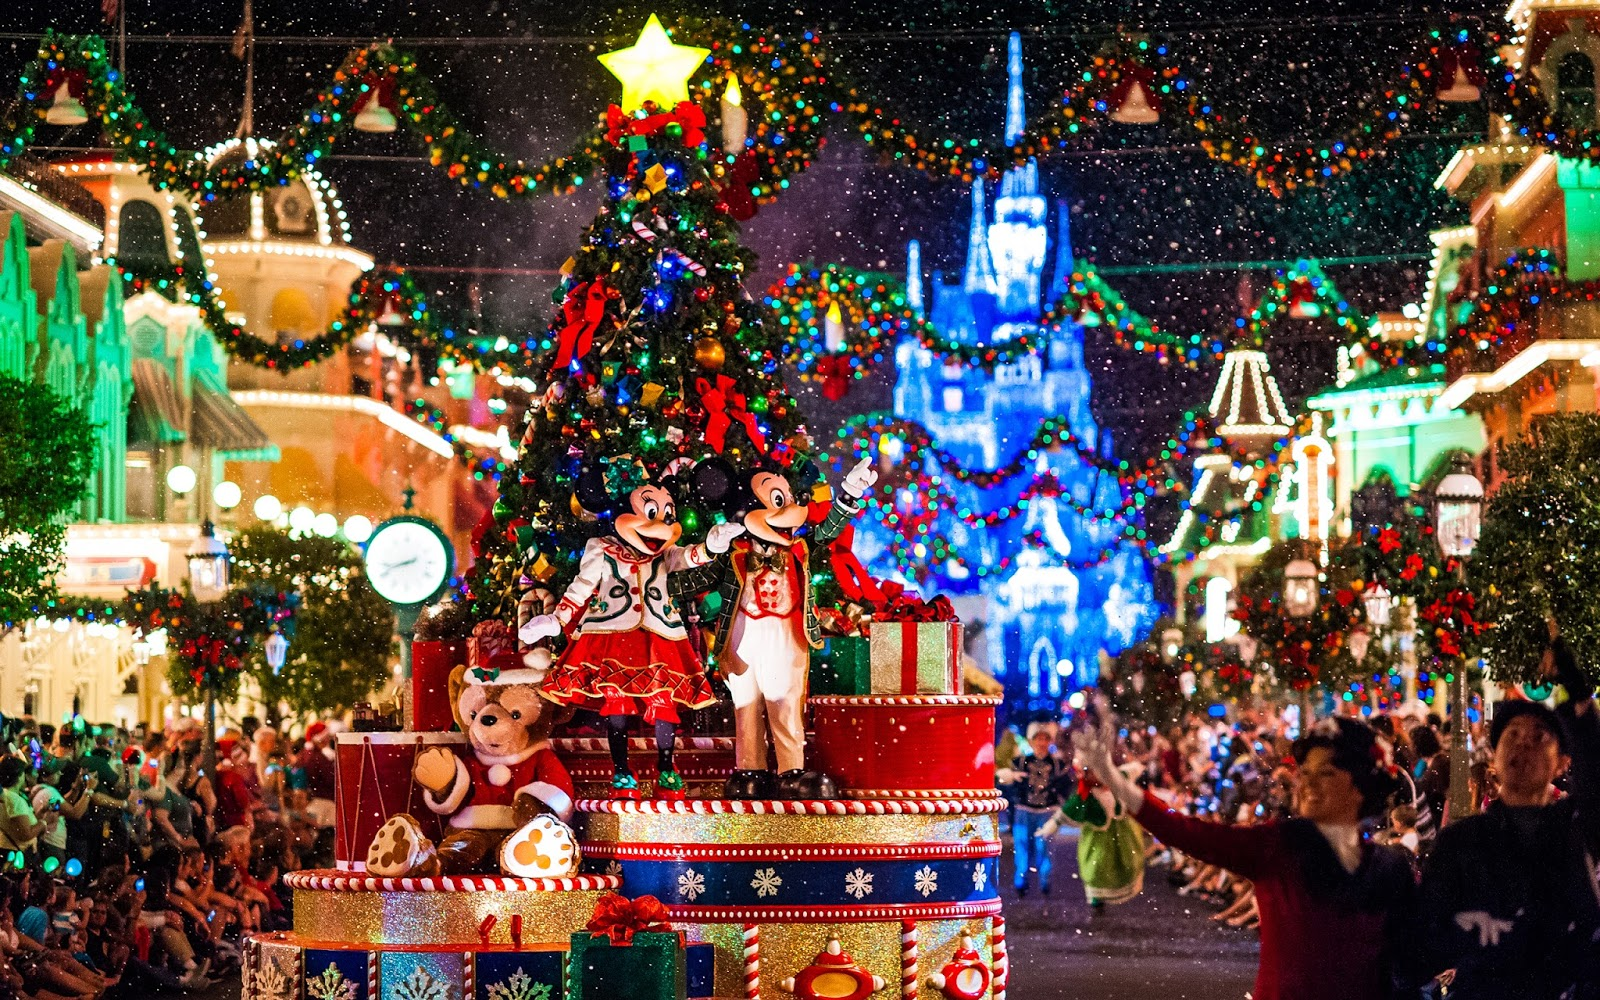 deluxe transportation to disneyland at christmas time - Disneyland Christmas Time